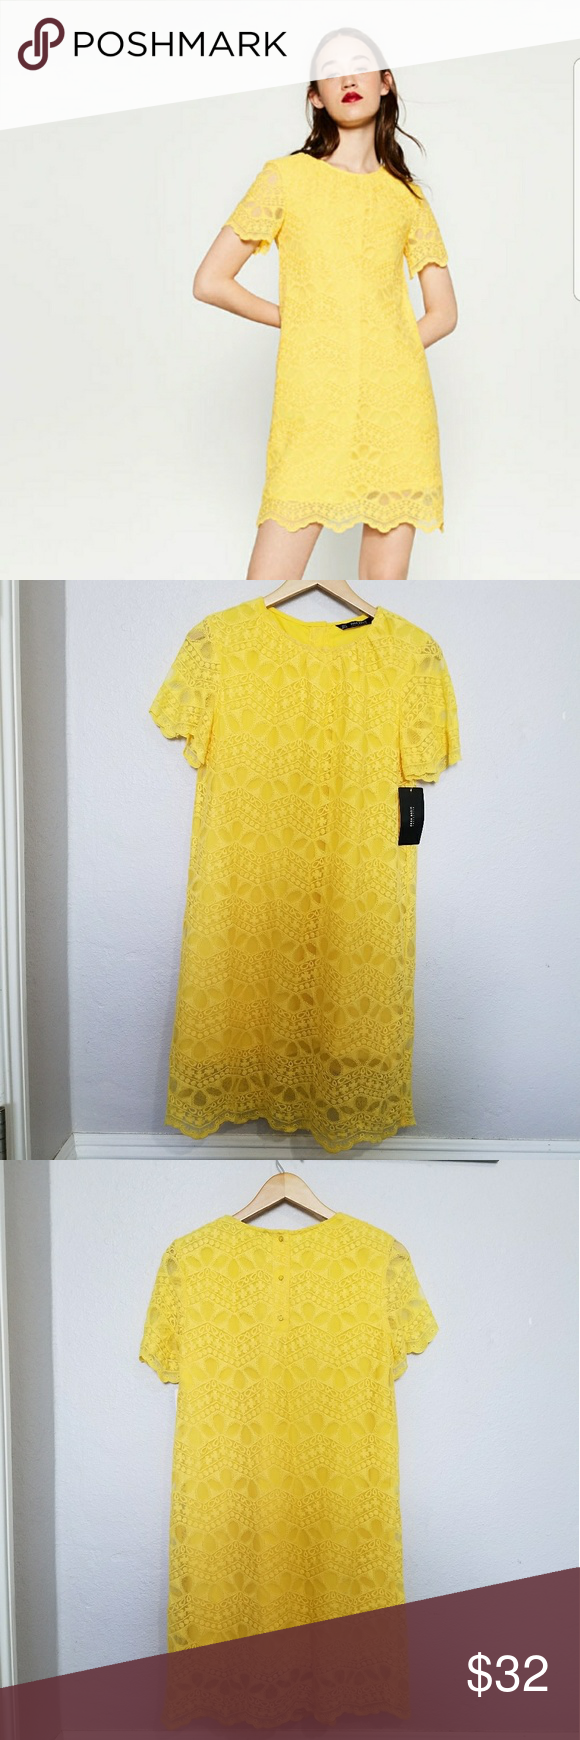 1963887b zara yellow guipure lace dress 7901/026 condition: brand new with tags  *approximate measurements taken with item laying flat* bust: 18